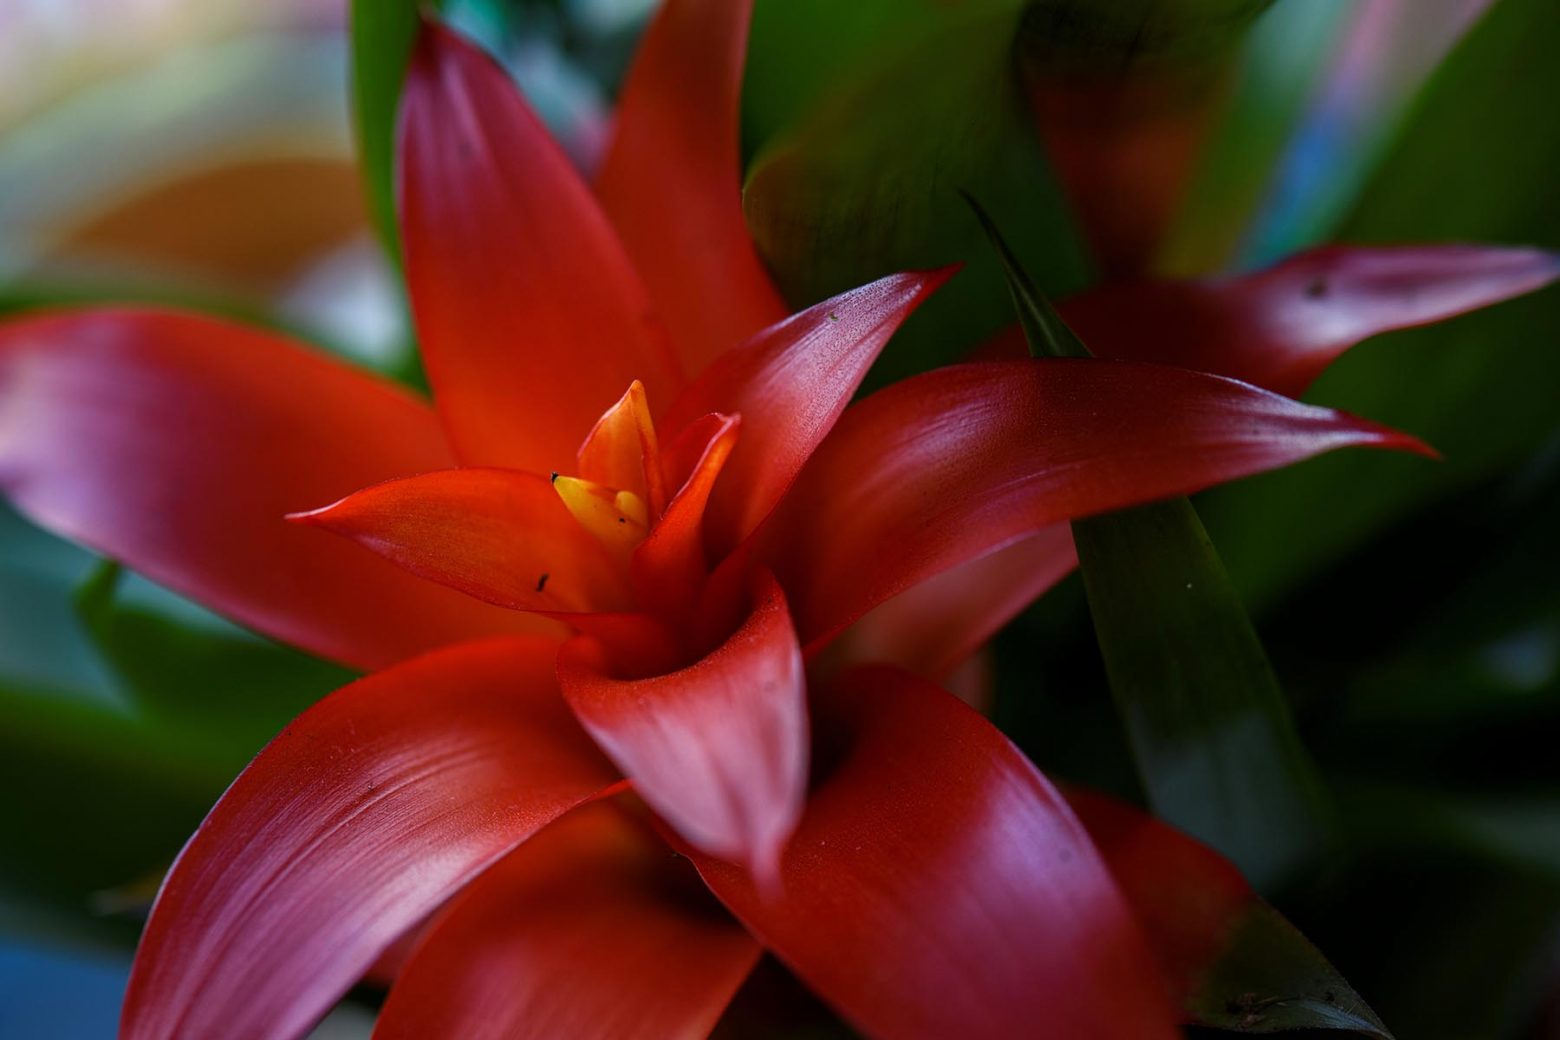 Free stock photo Close up of a red Bromeliad flower